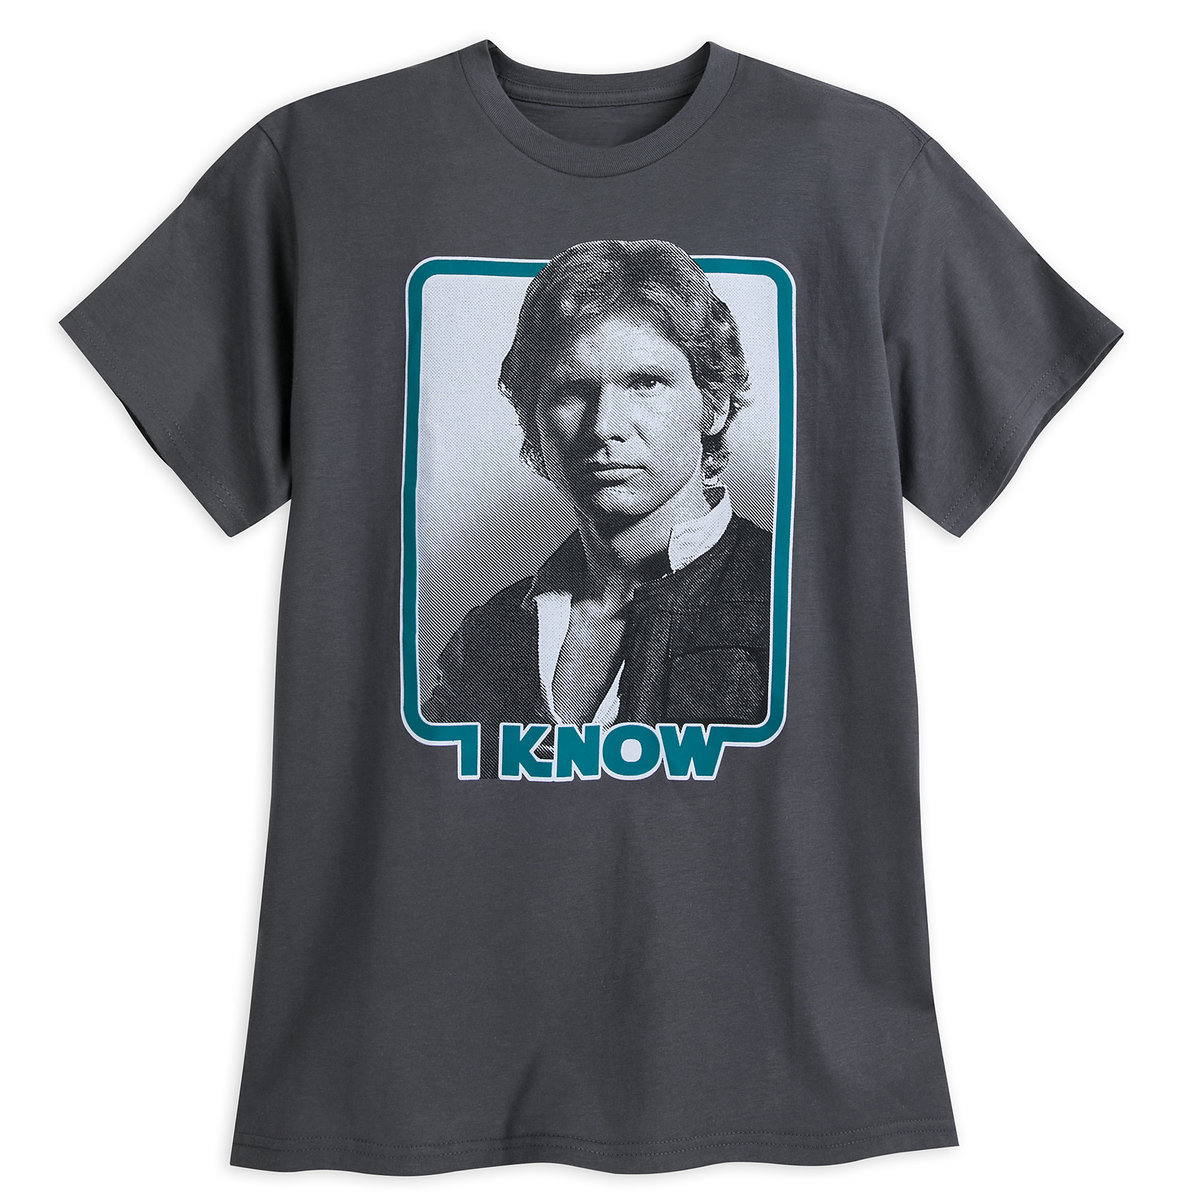 Disney Adult Shirt Star Wars Han Solo I Know